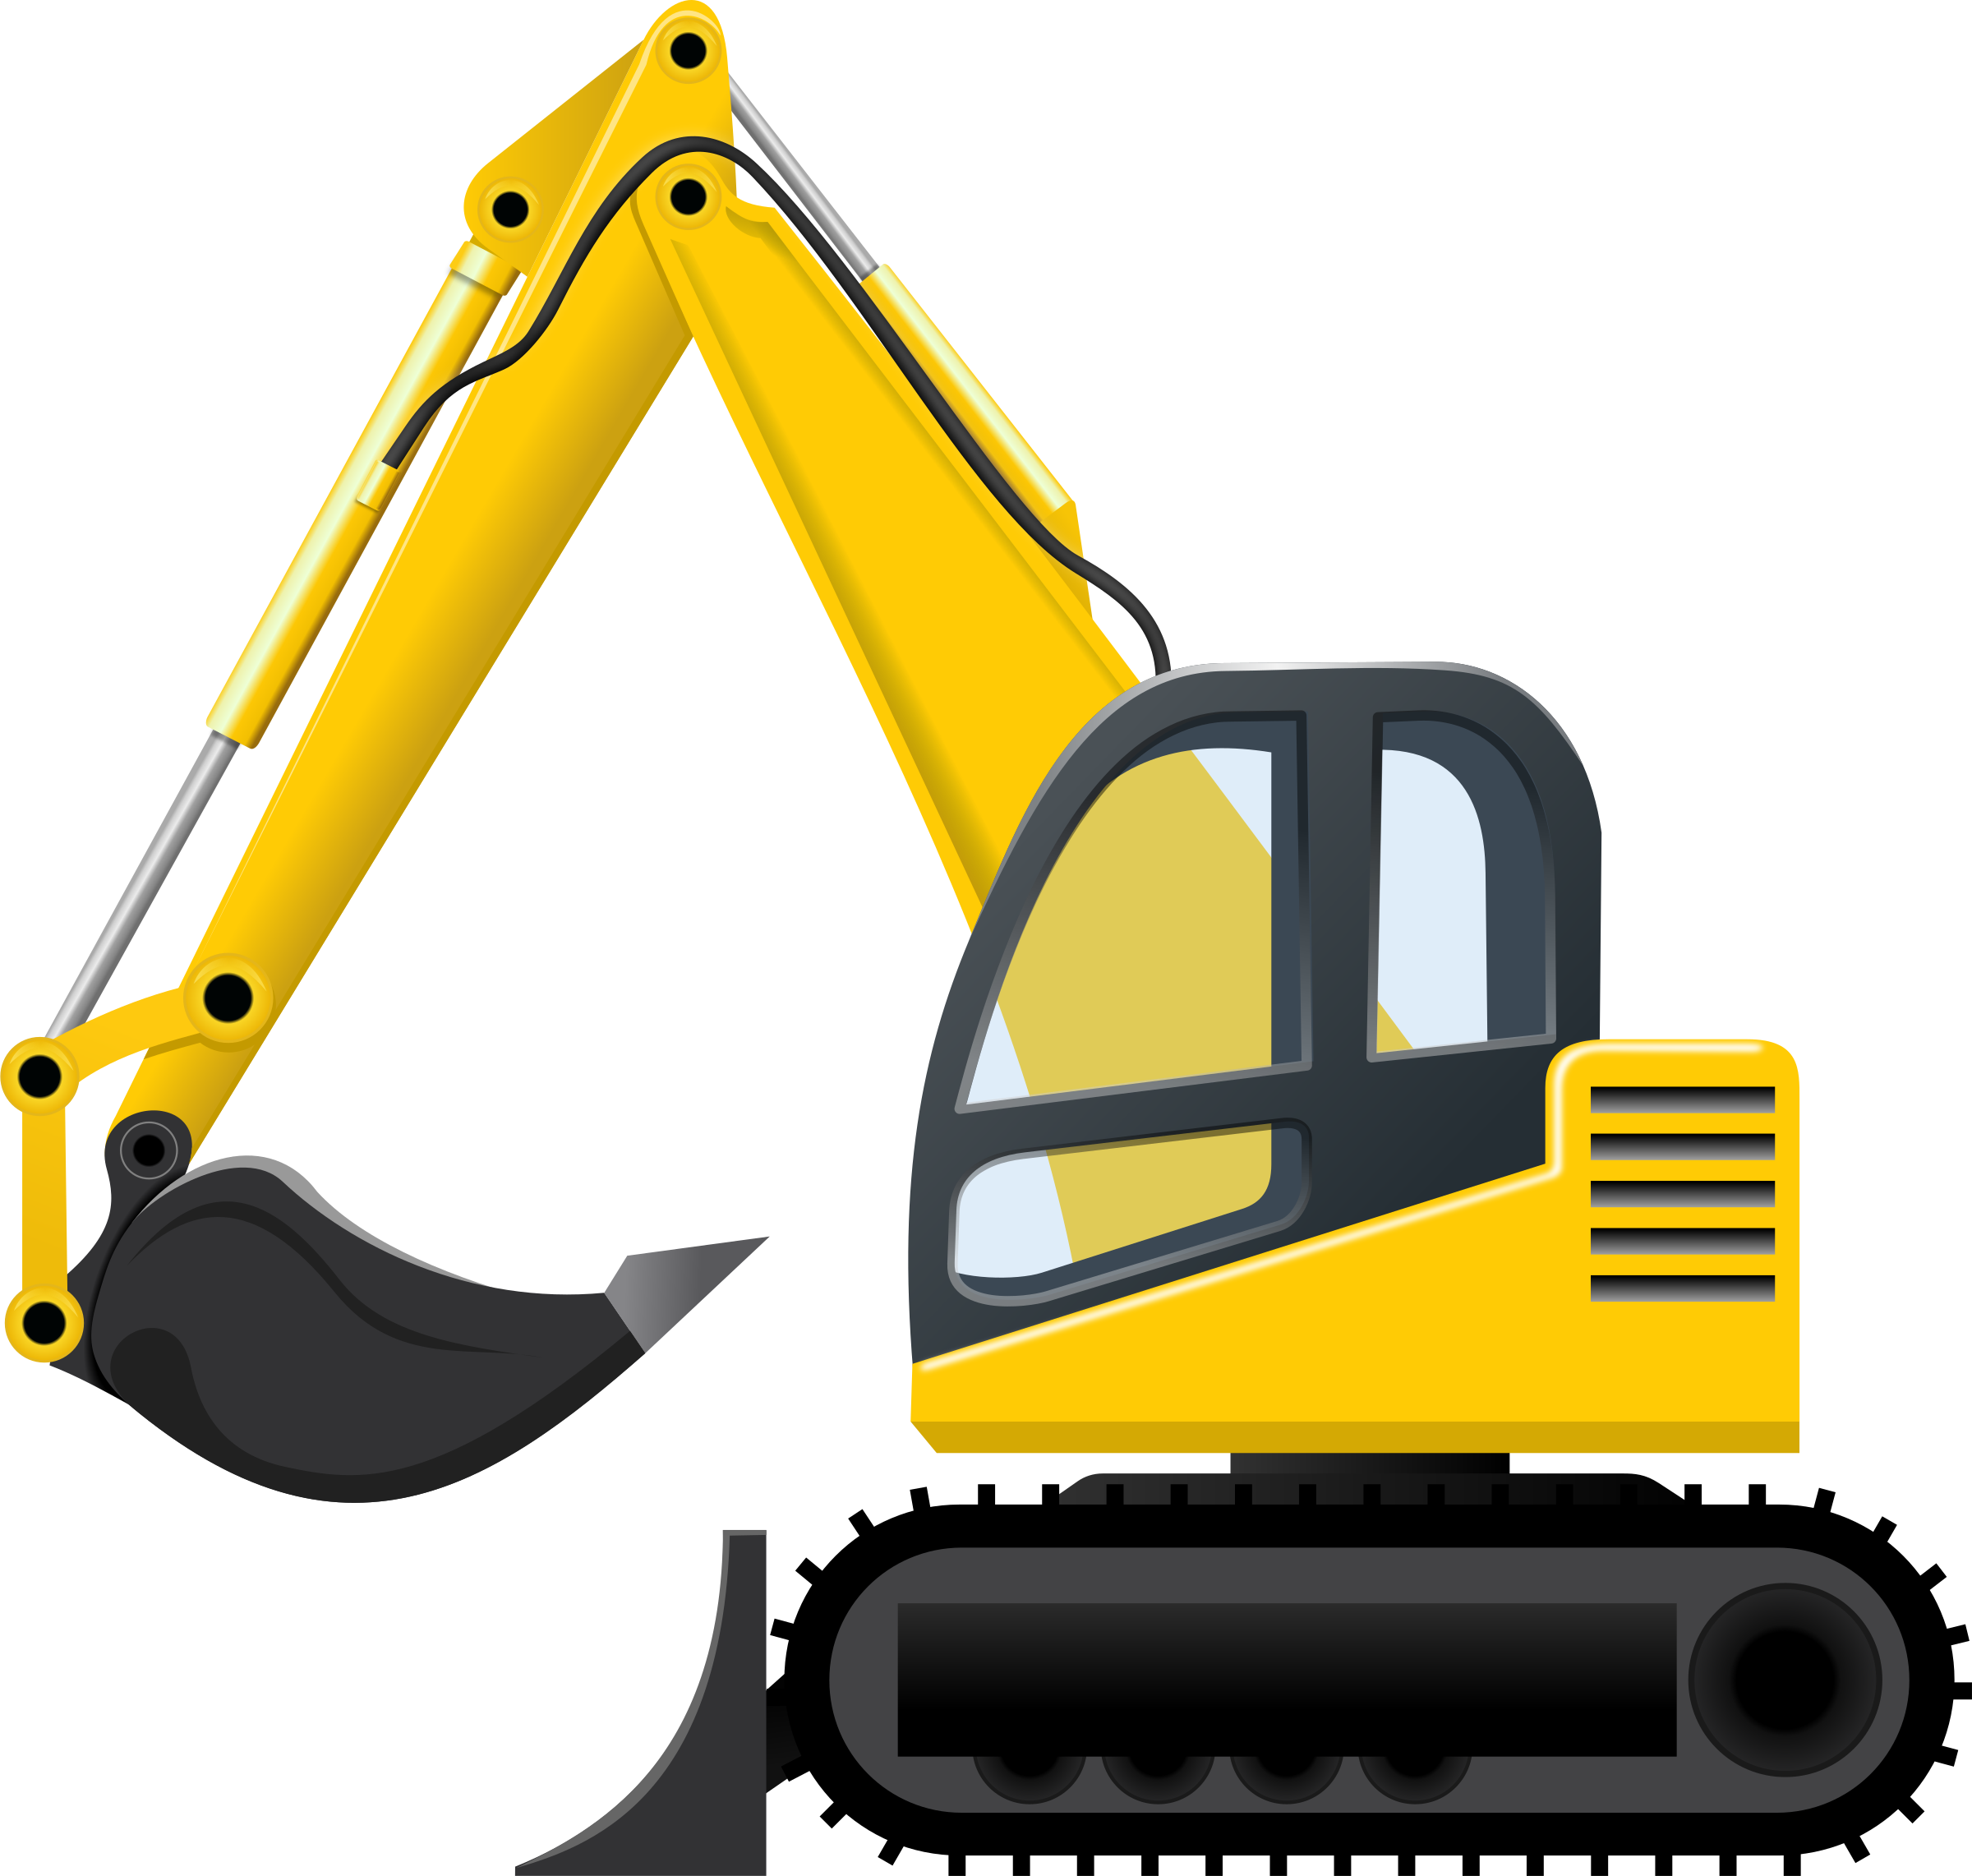 Bulldozer svg transparent. Excavator download huge